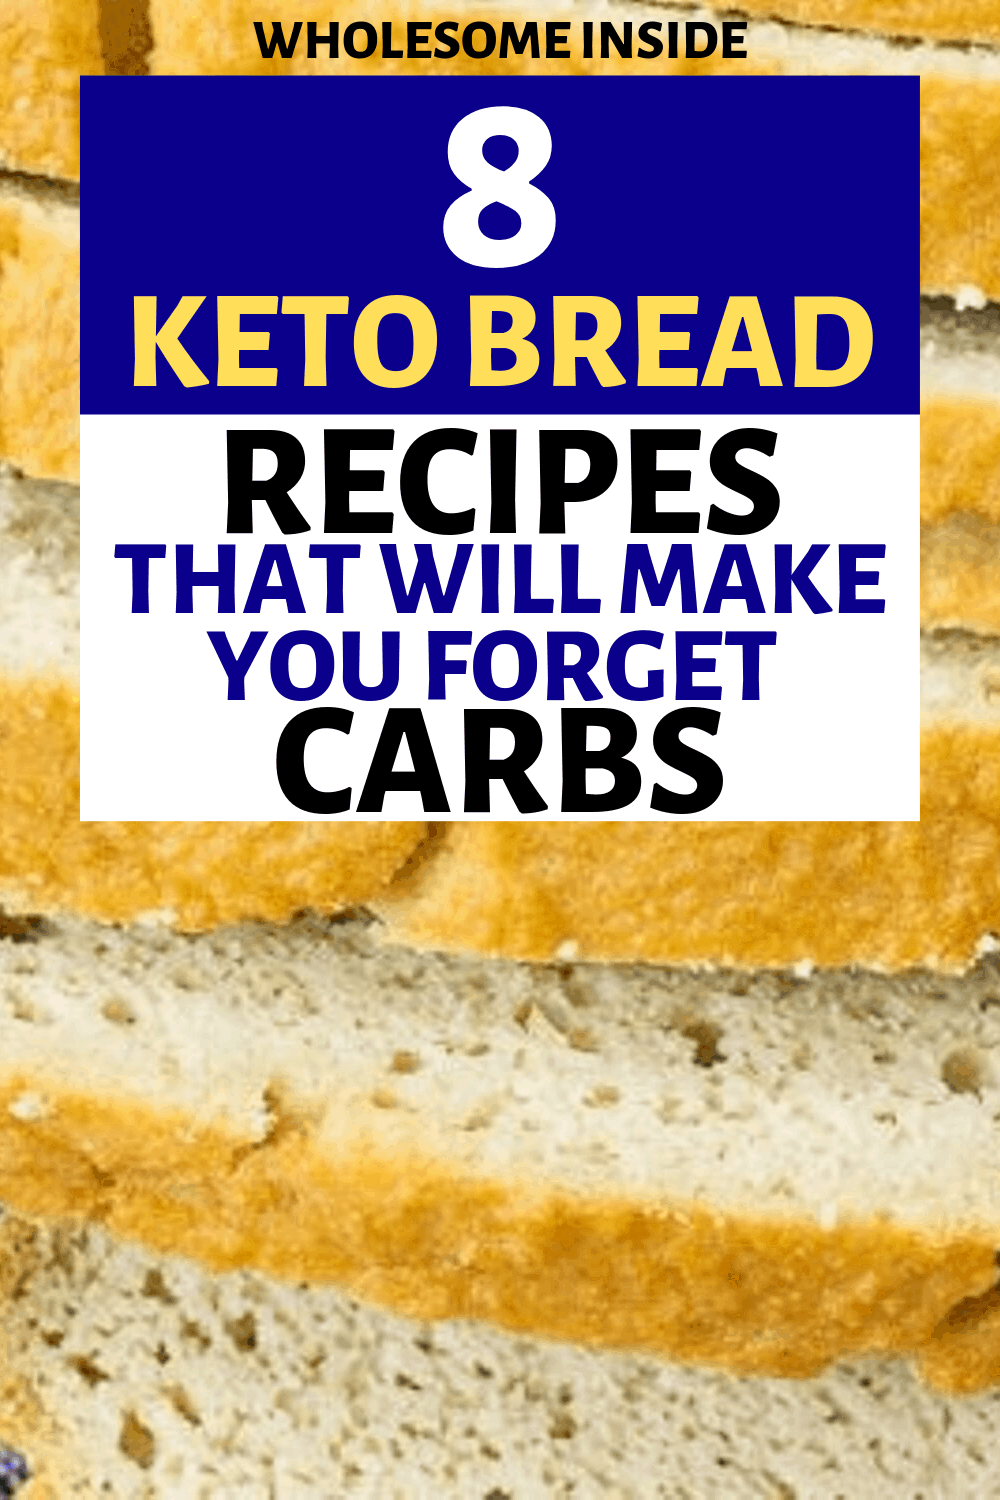 Low Carb bread for Keto.